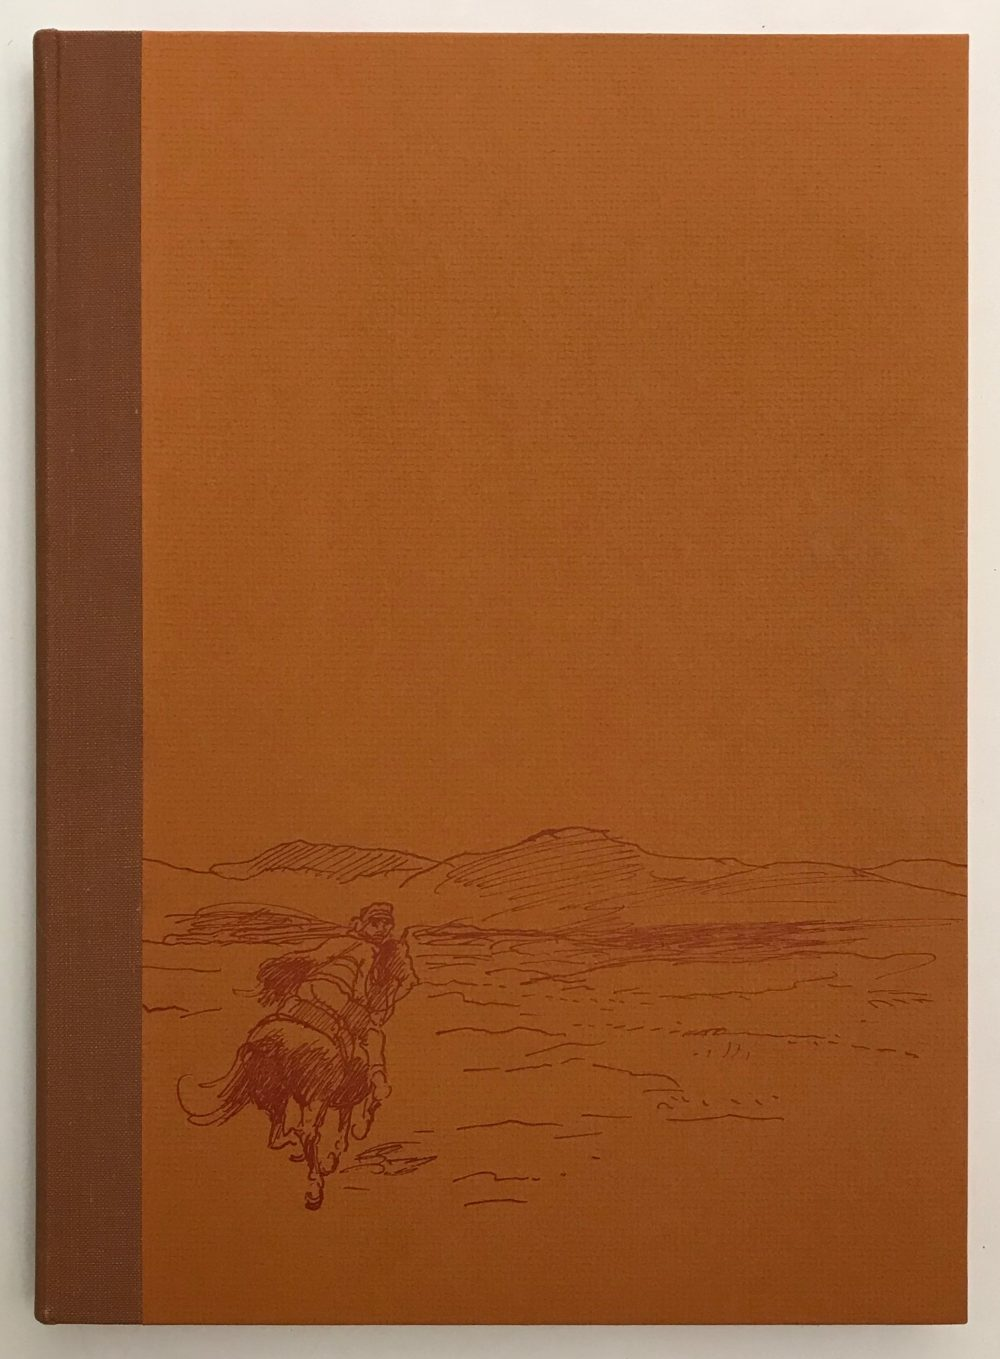 T.E. Lawrence: Letters to E.T. Leeds, with an Introduction by J.M. Wilson, 1988. £275